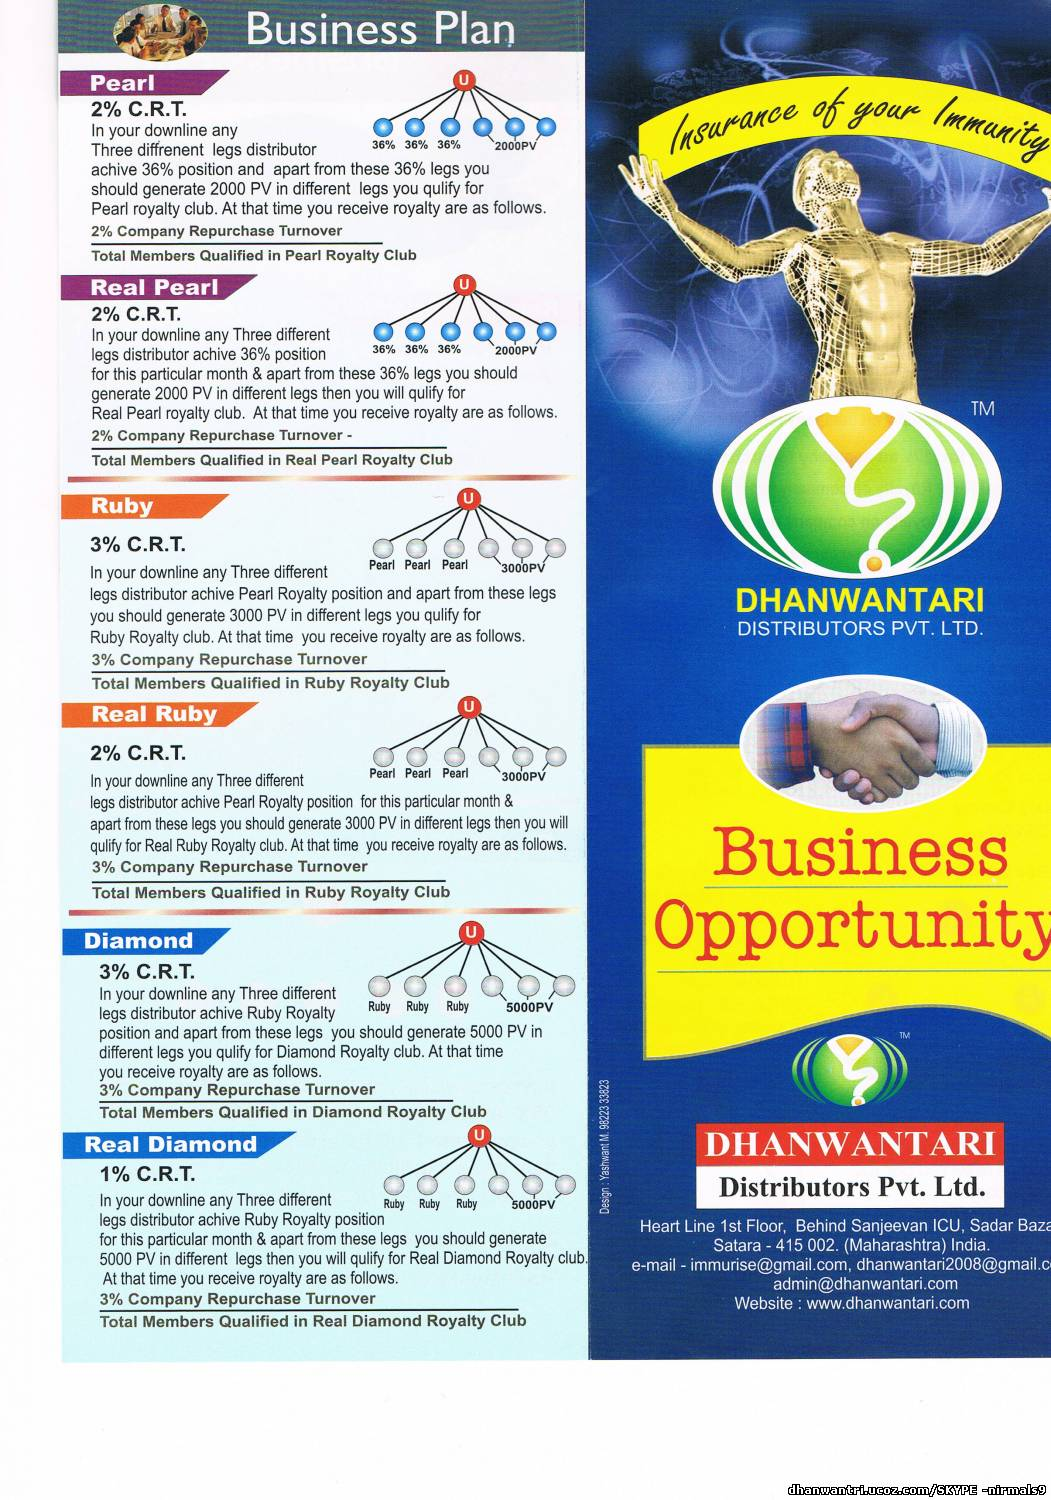 dhanwantari distributors business plan